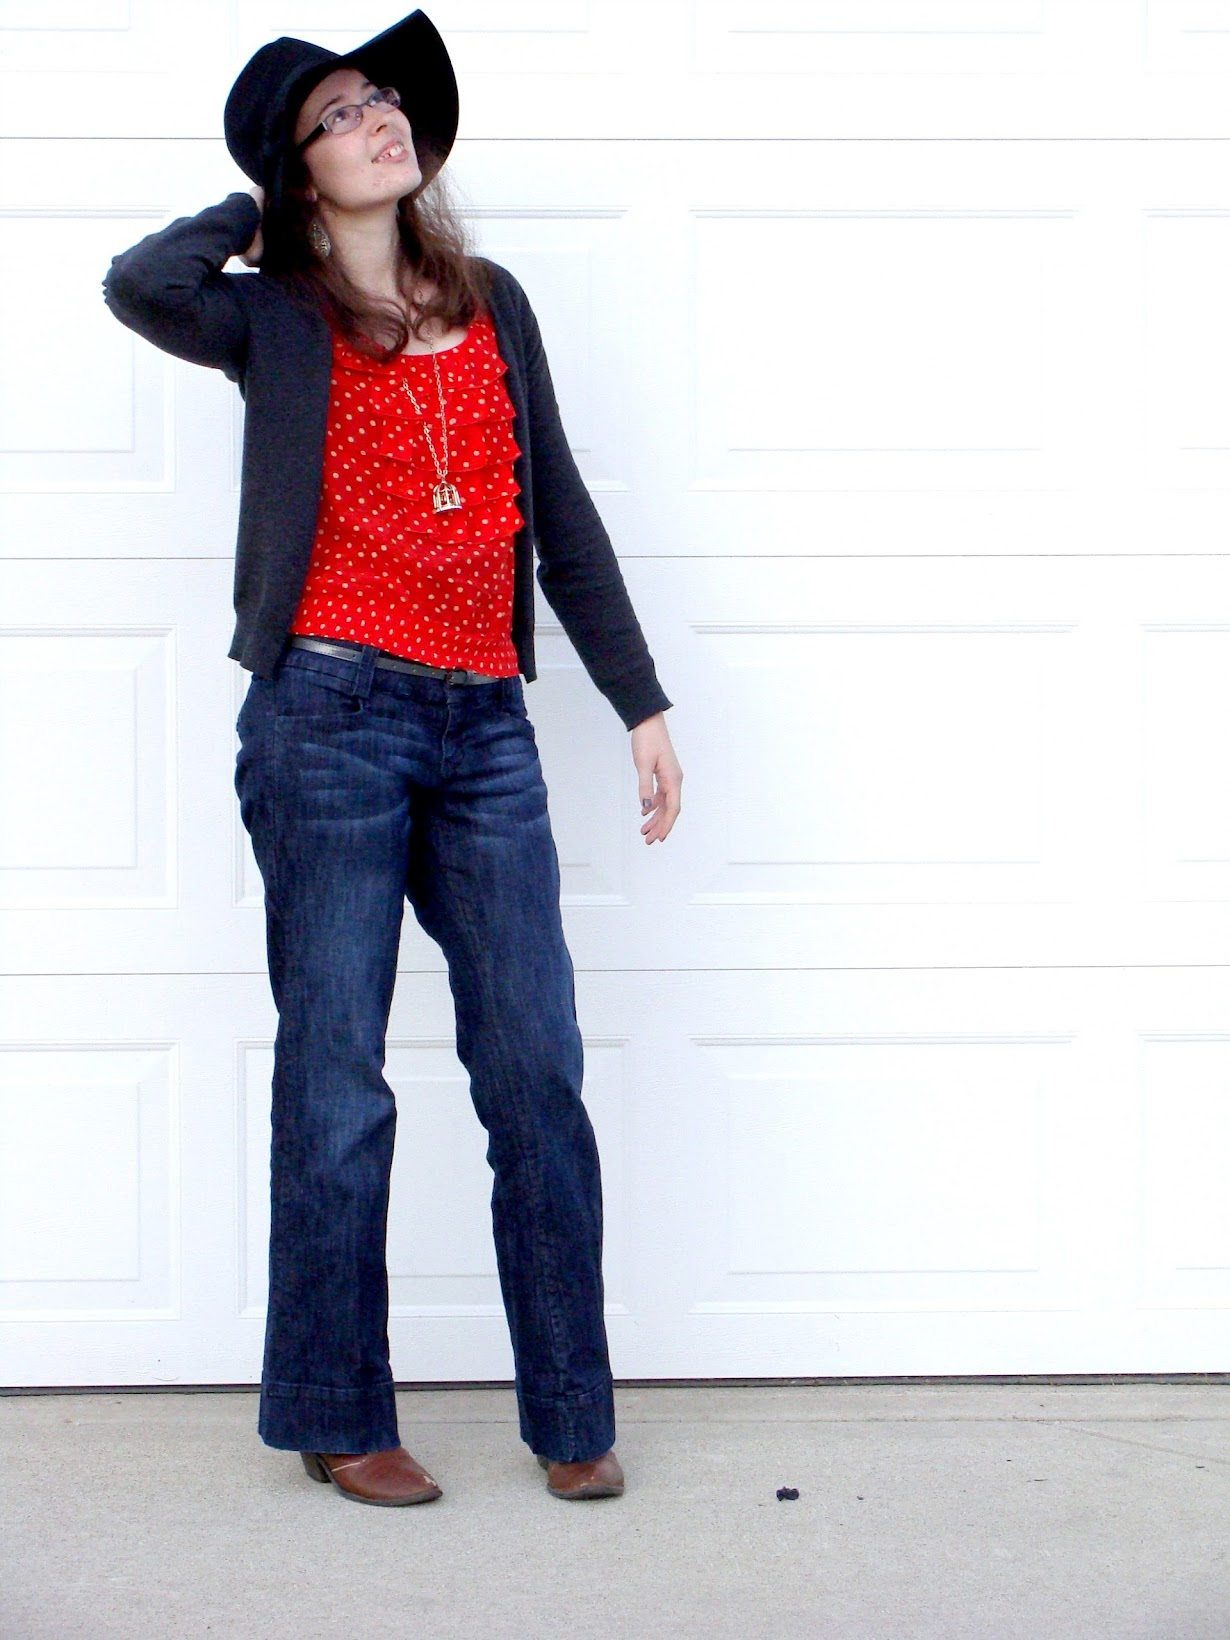 f184caecdf polka dot silk-blend top forever 21/ cardigan forever 21/ jeans maurices/  skinny belt forever 21/ boots target/ bird cage necklace forever 21/ floppy  hat ...